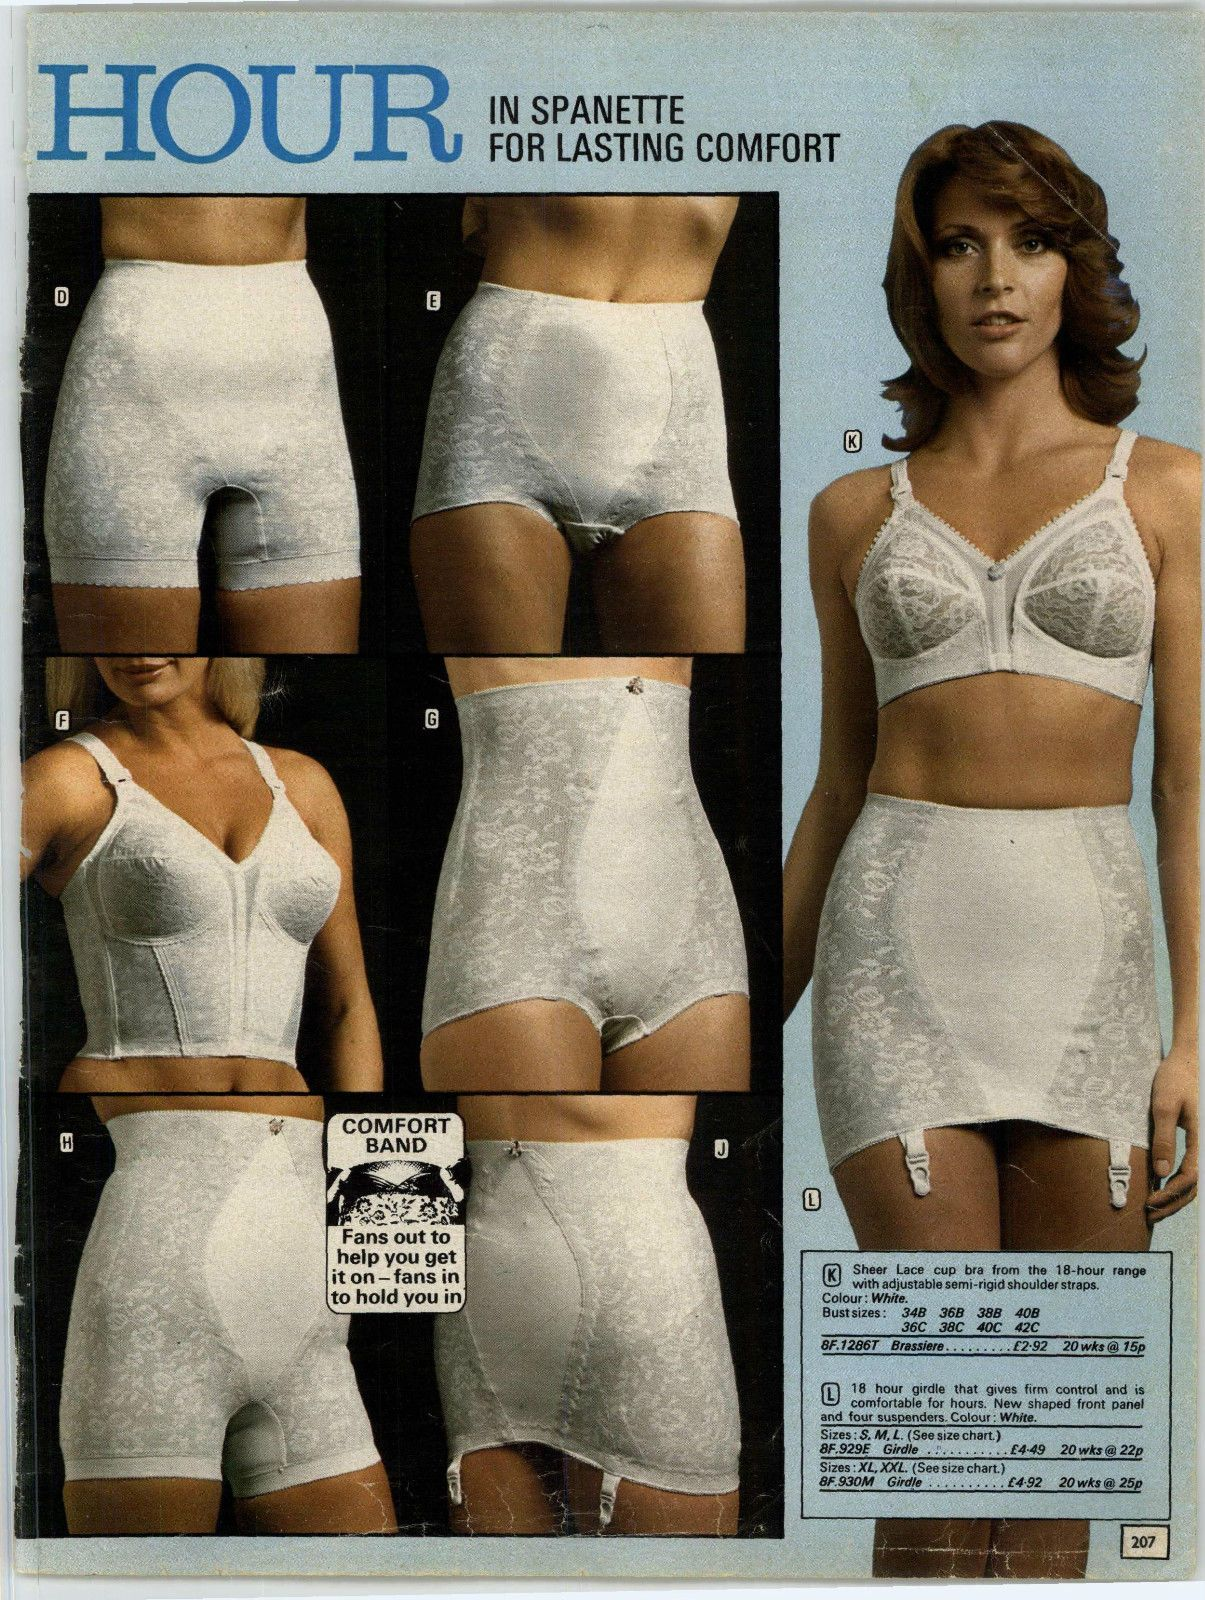 fed88795cb2 The entire selection of Playtex 18 hour girdles and bras from 1975. The  ones my mom wore.